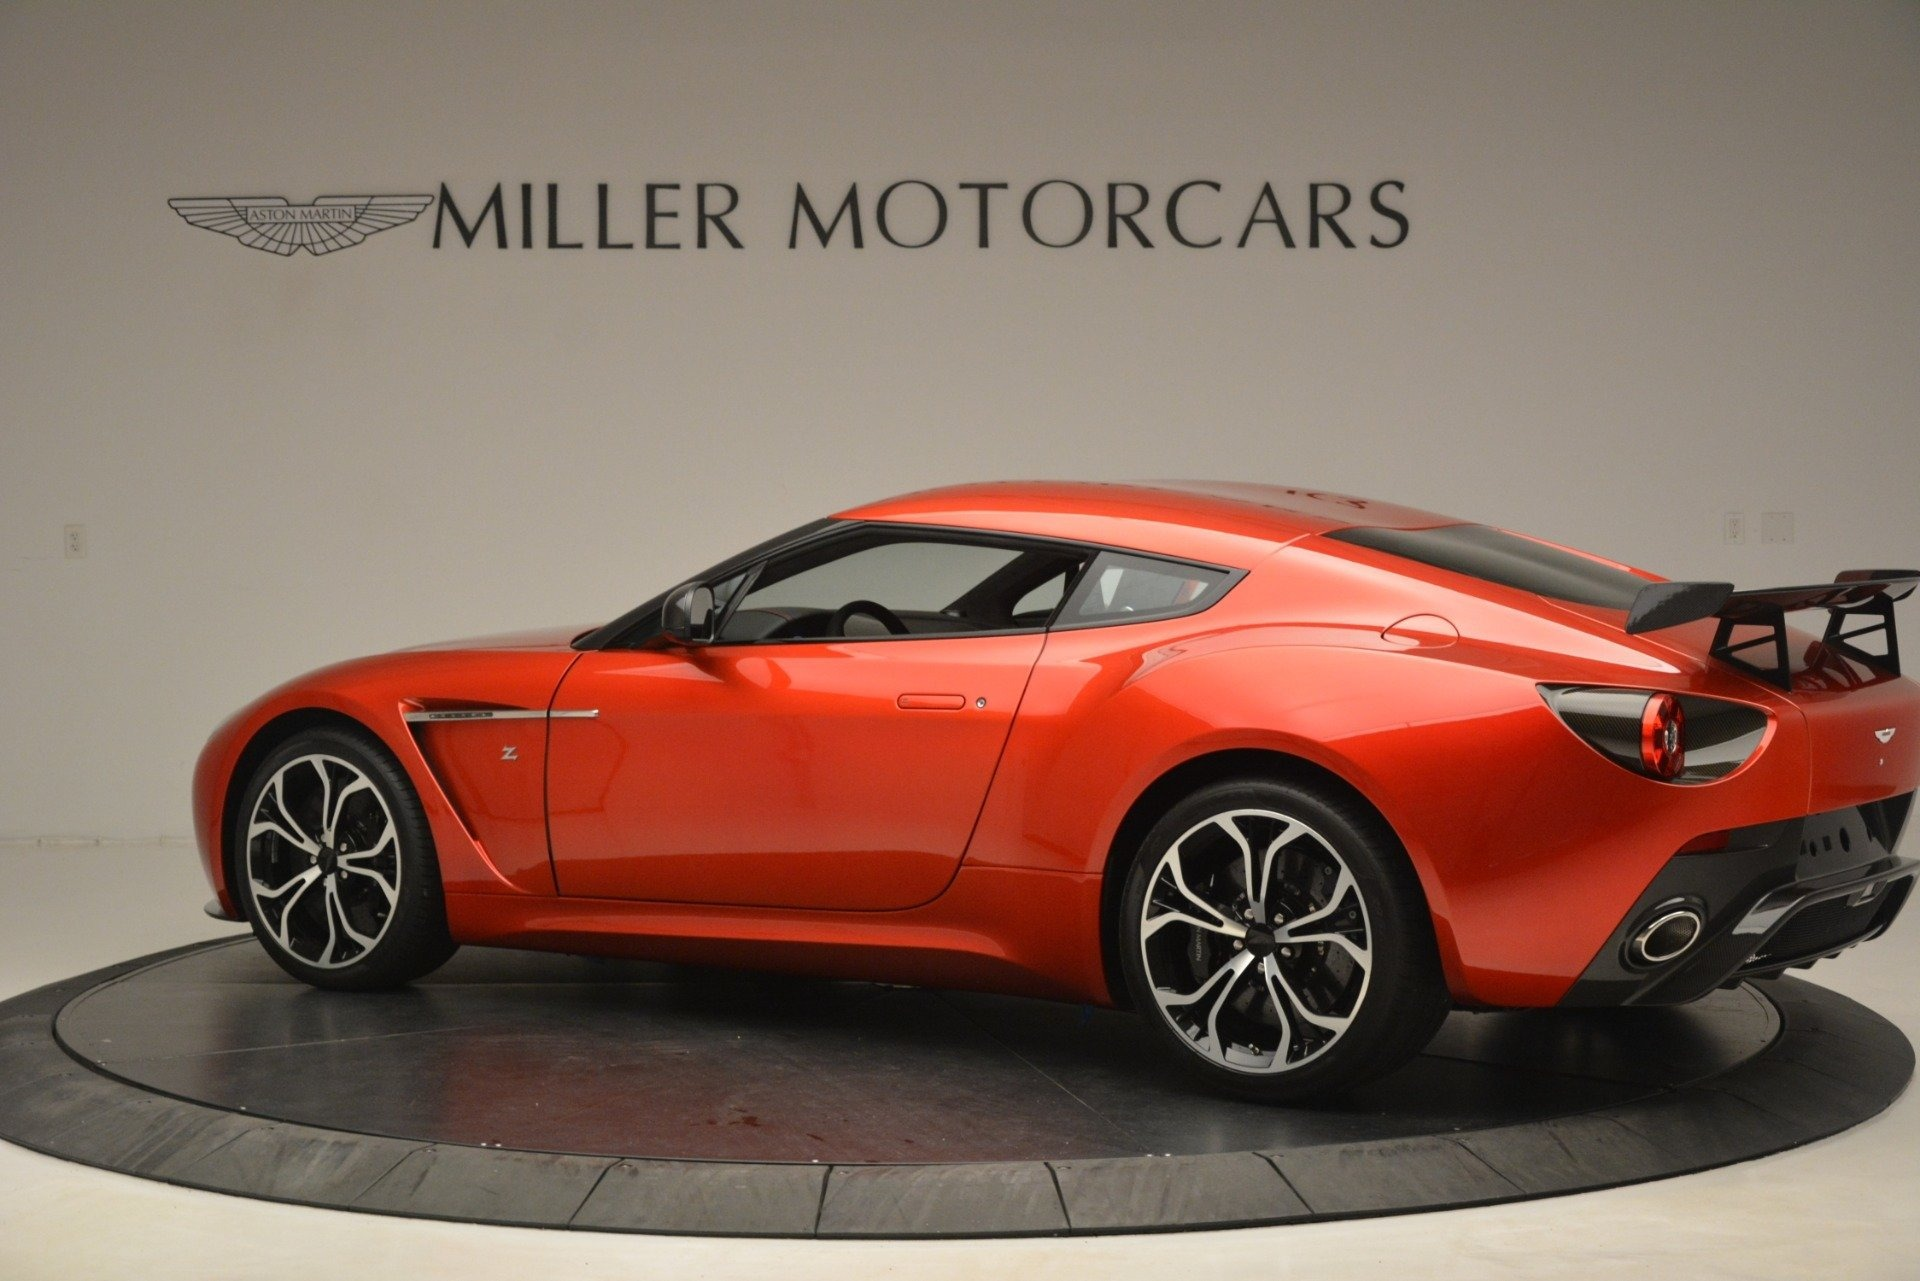 Used 2013 Aston Martin V12 Zagato Coupe For Sale In Westport, CT 3181_p3